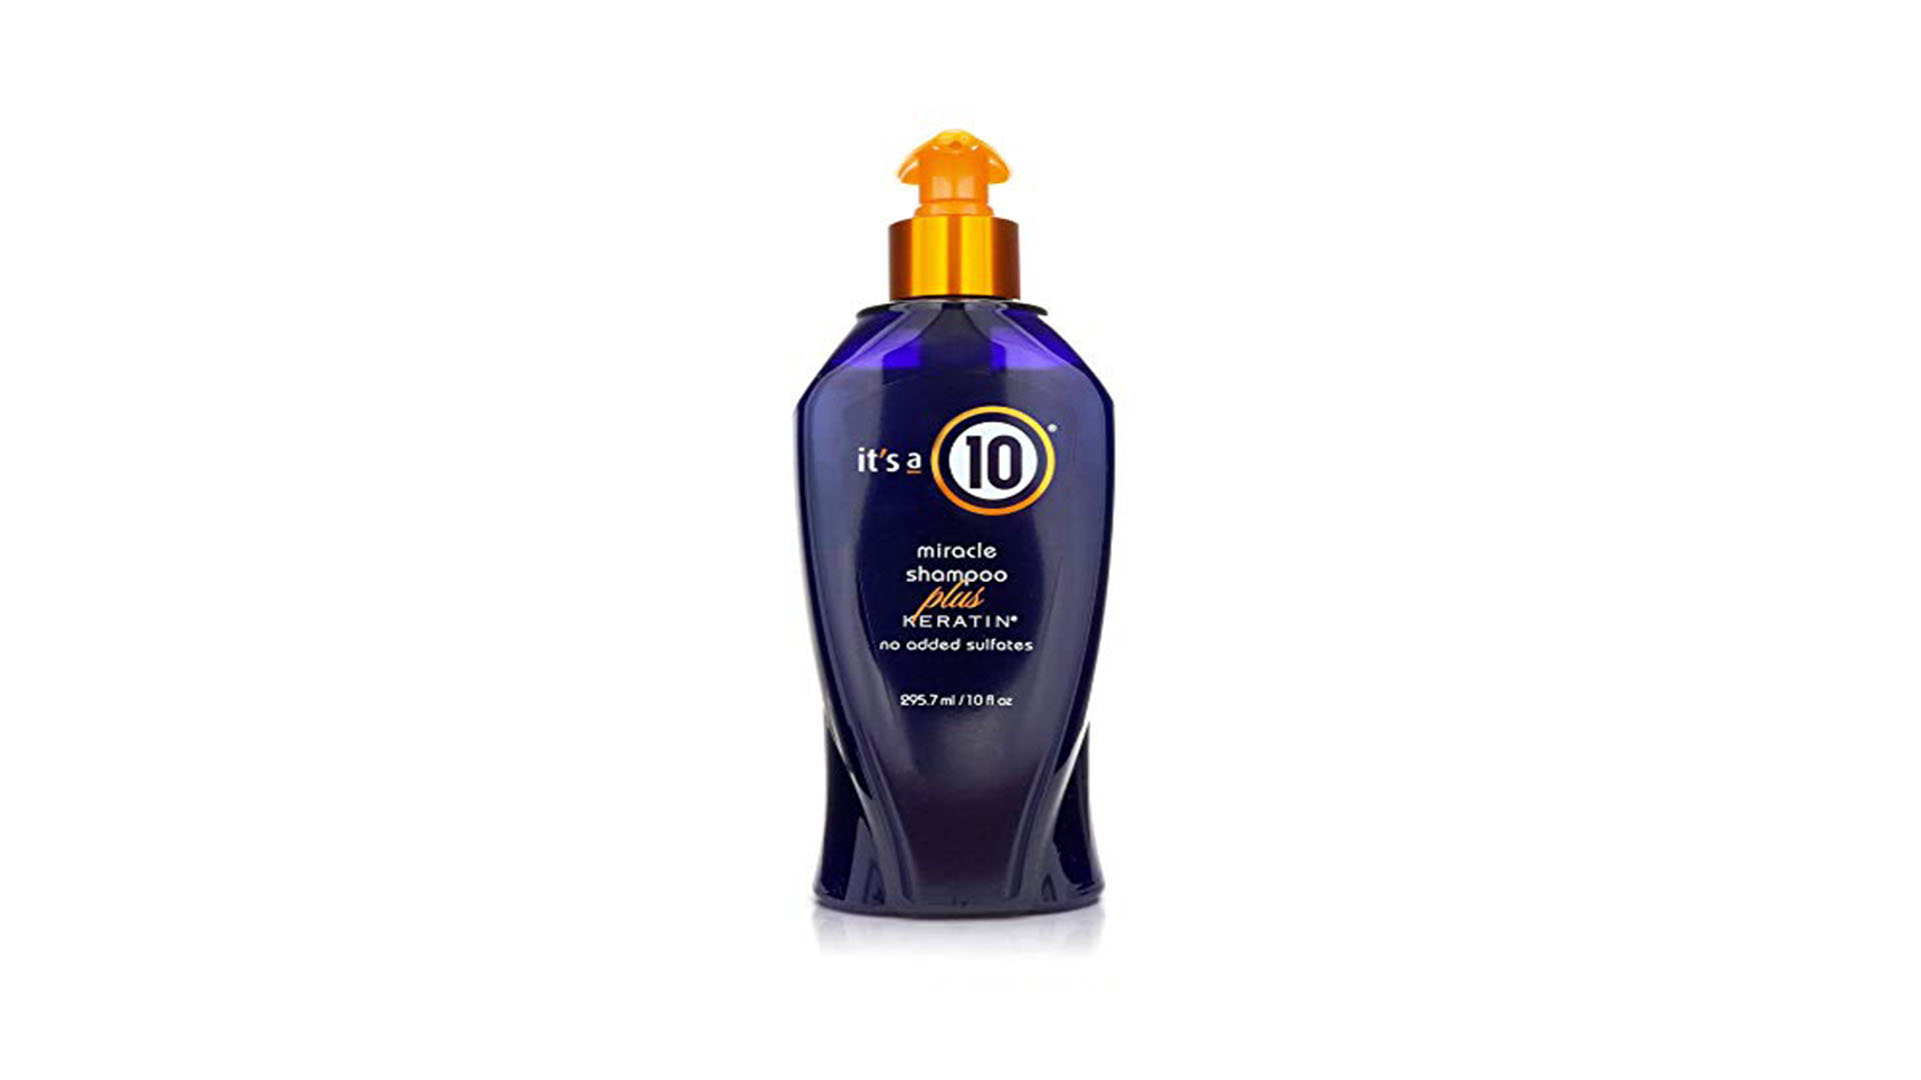 It's a 10 Haircare Miracle Shampoo Plus Keratin